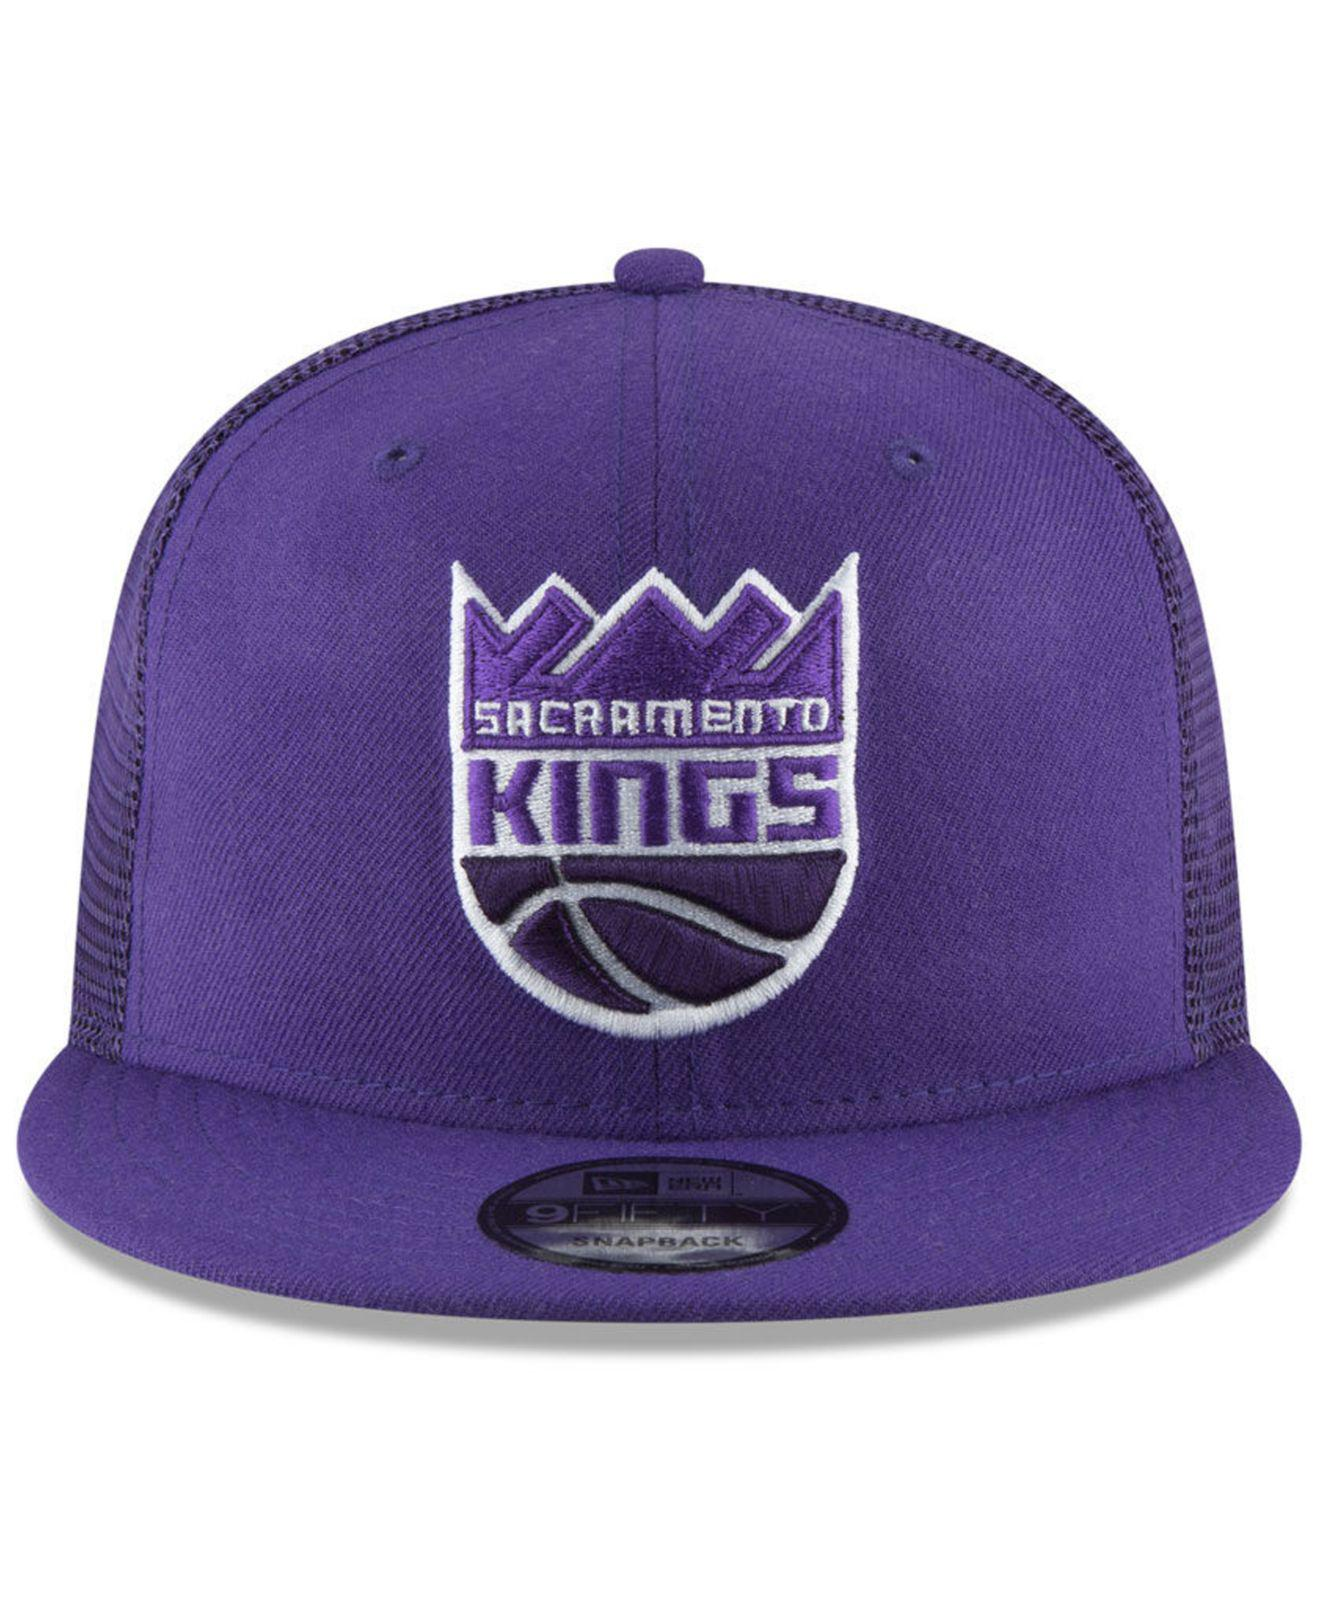 low priced 9189a 48115 ... free shipping lyst ktz sacramento kings almost tonal trucker 9fifty  snapback cap in gray for men